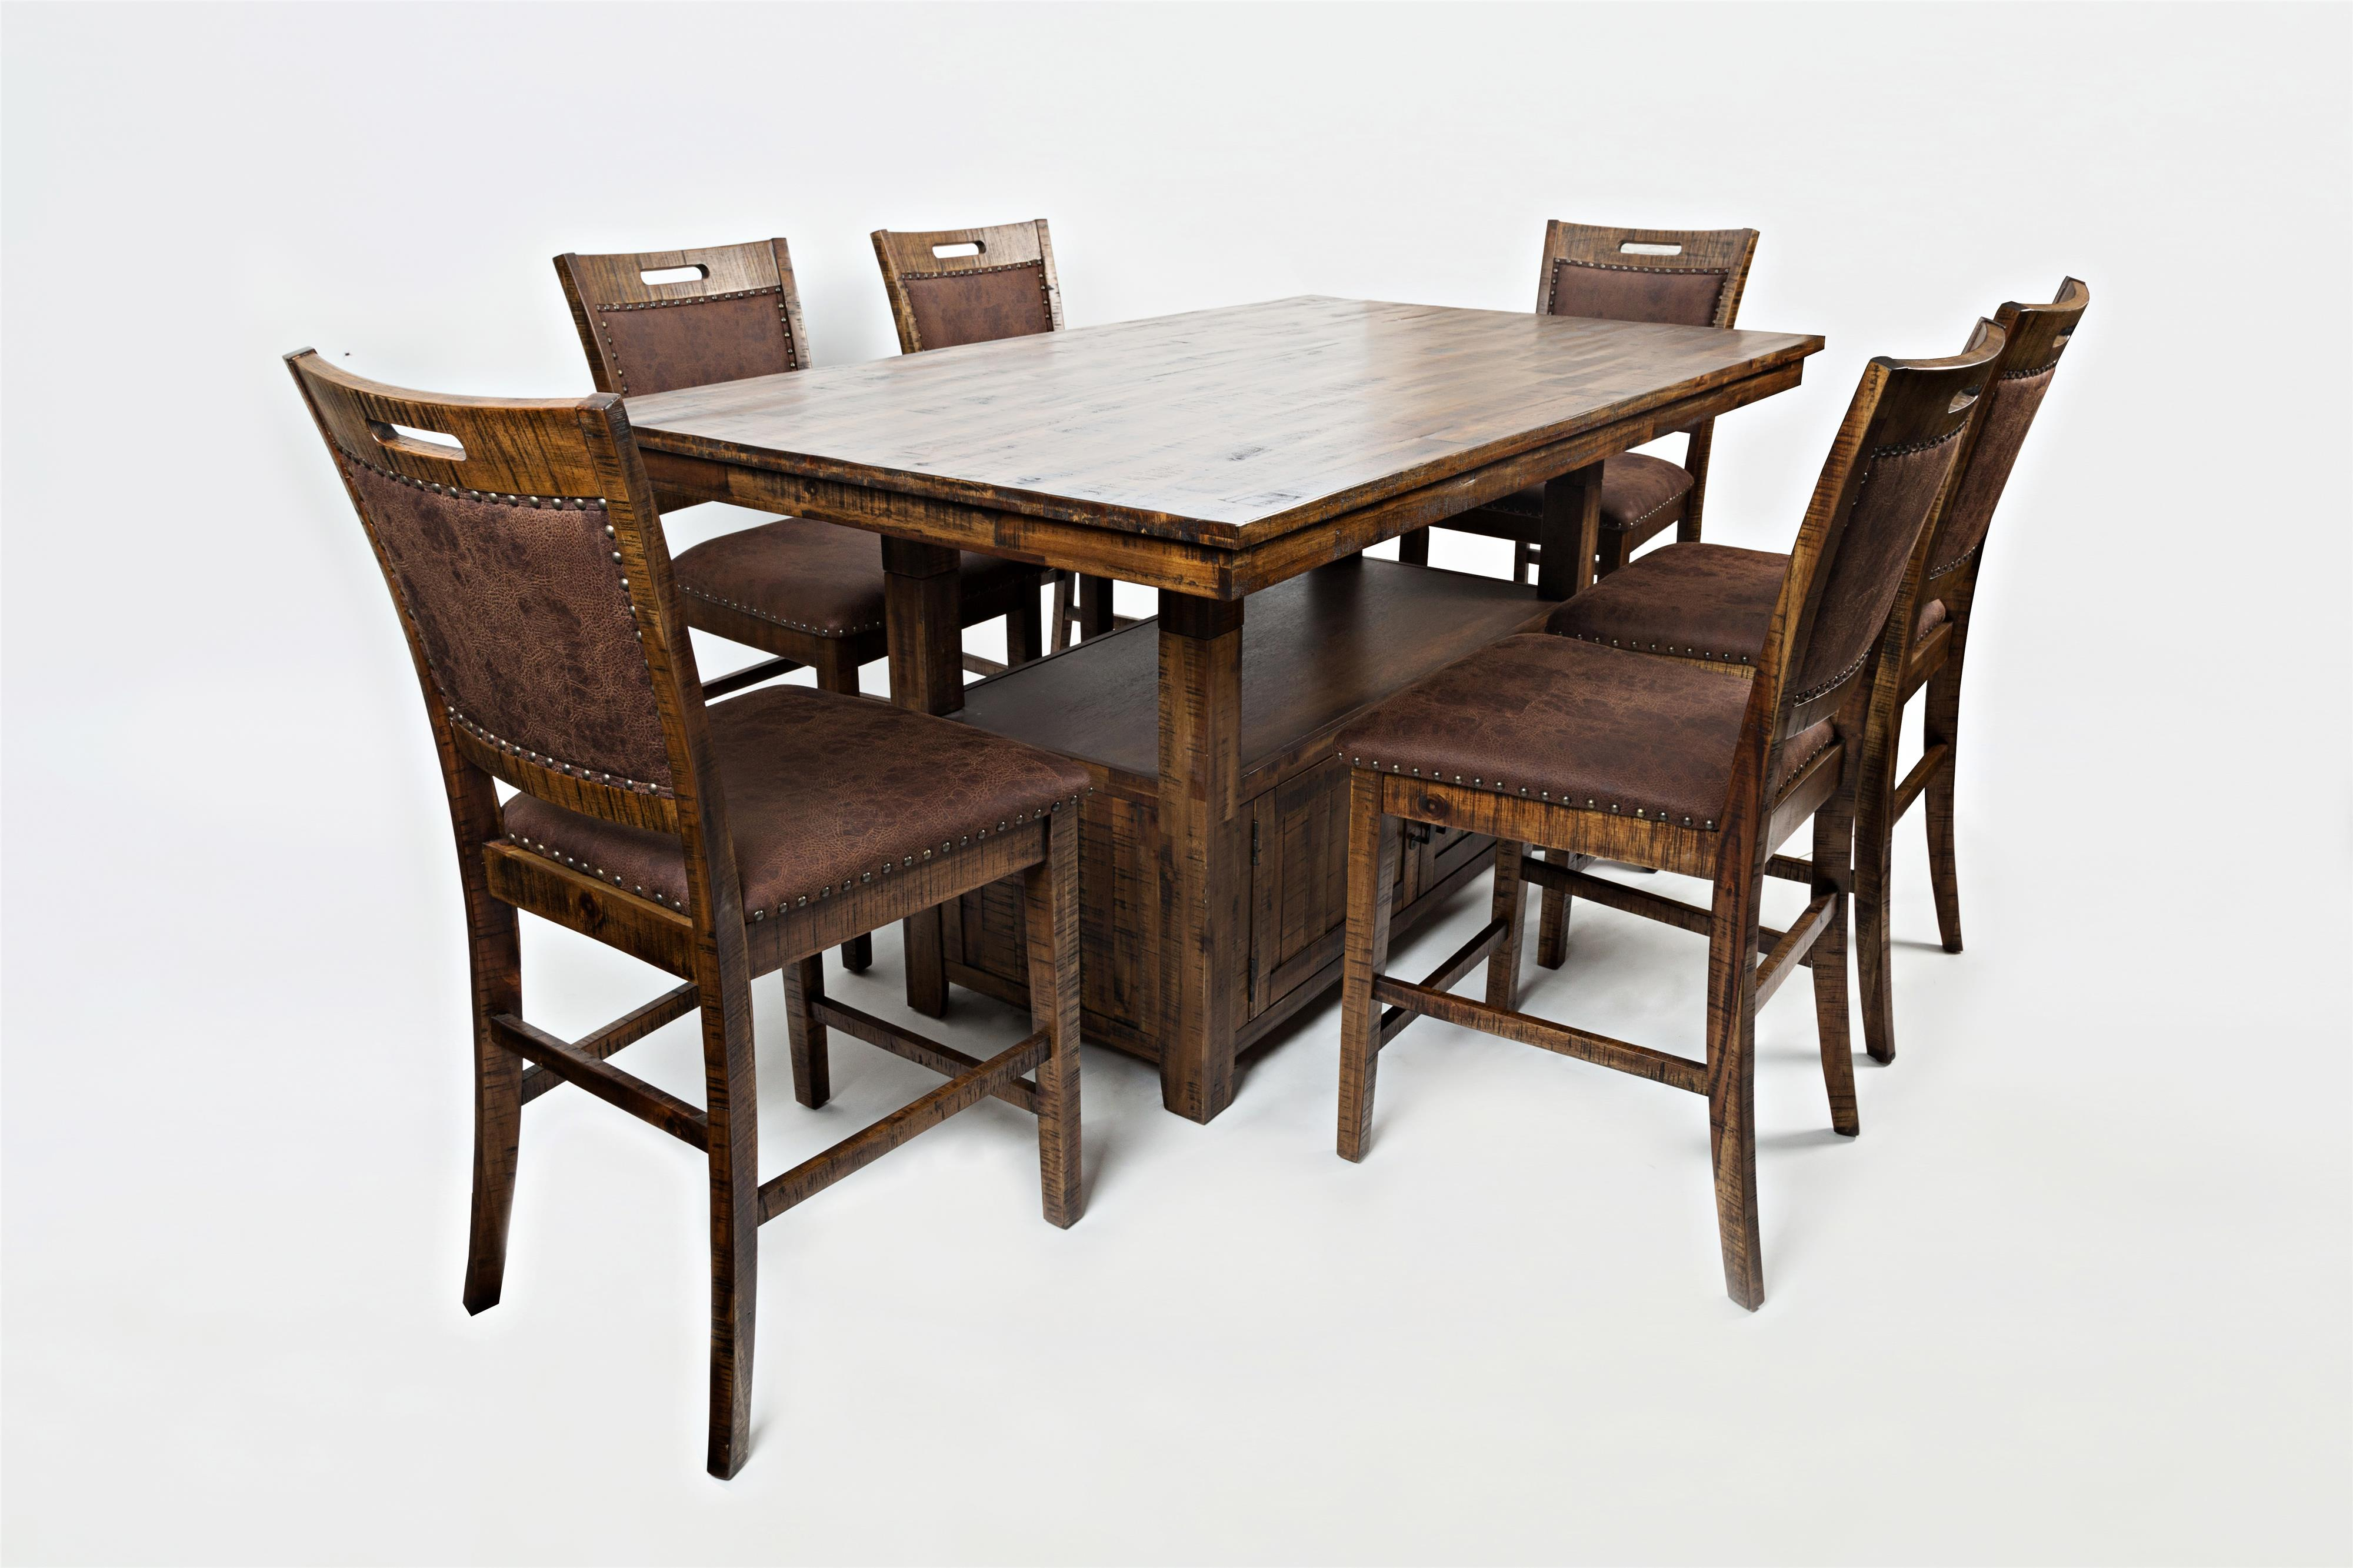 Cannon Valley High/Low Table and Chair Set by Jofran at Stoney Creek Furniture